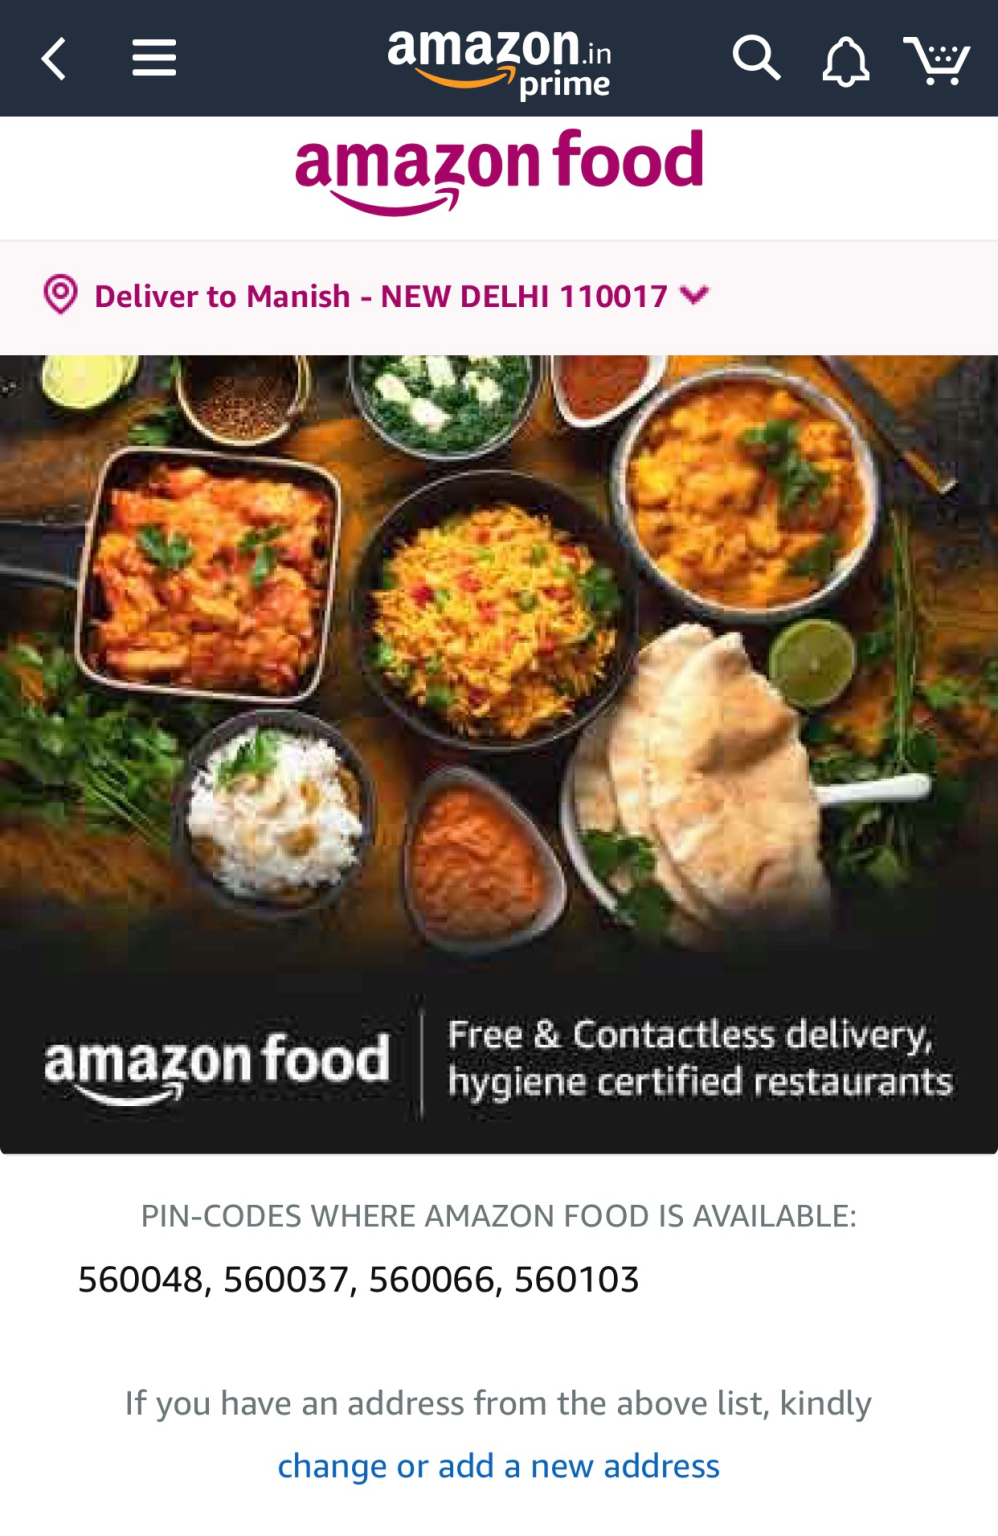 Amazon has launched a food delivery service in India